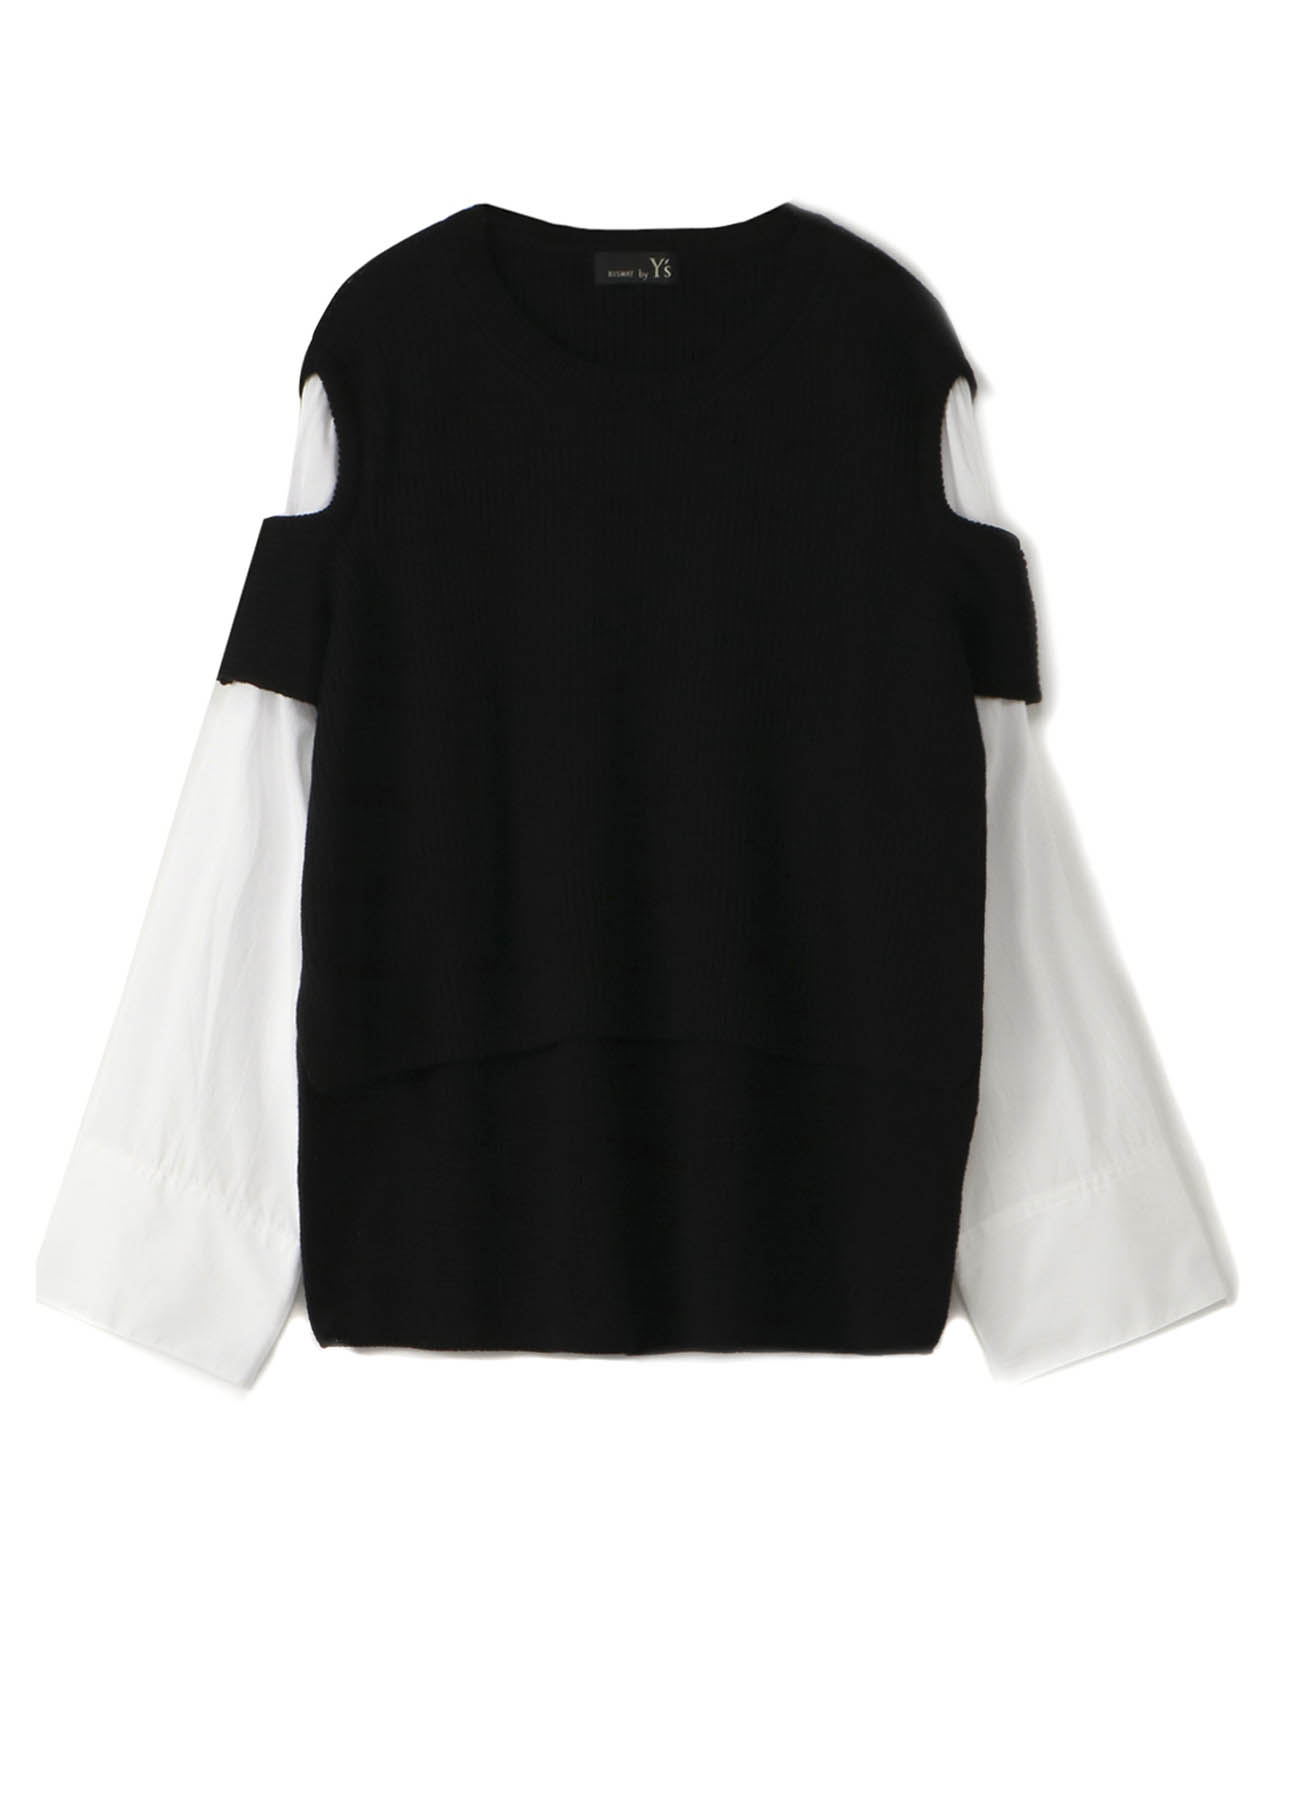 RISMATbyY's WOOL HALF SHOULDER HOLE PULL OVER WITH SHIRT